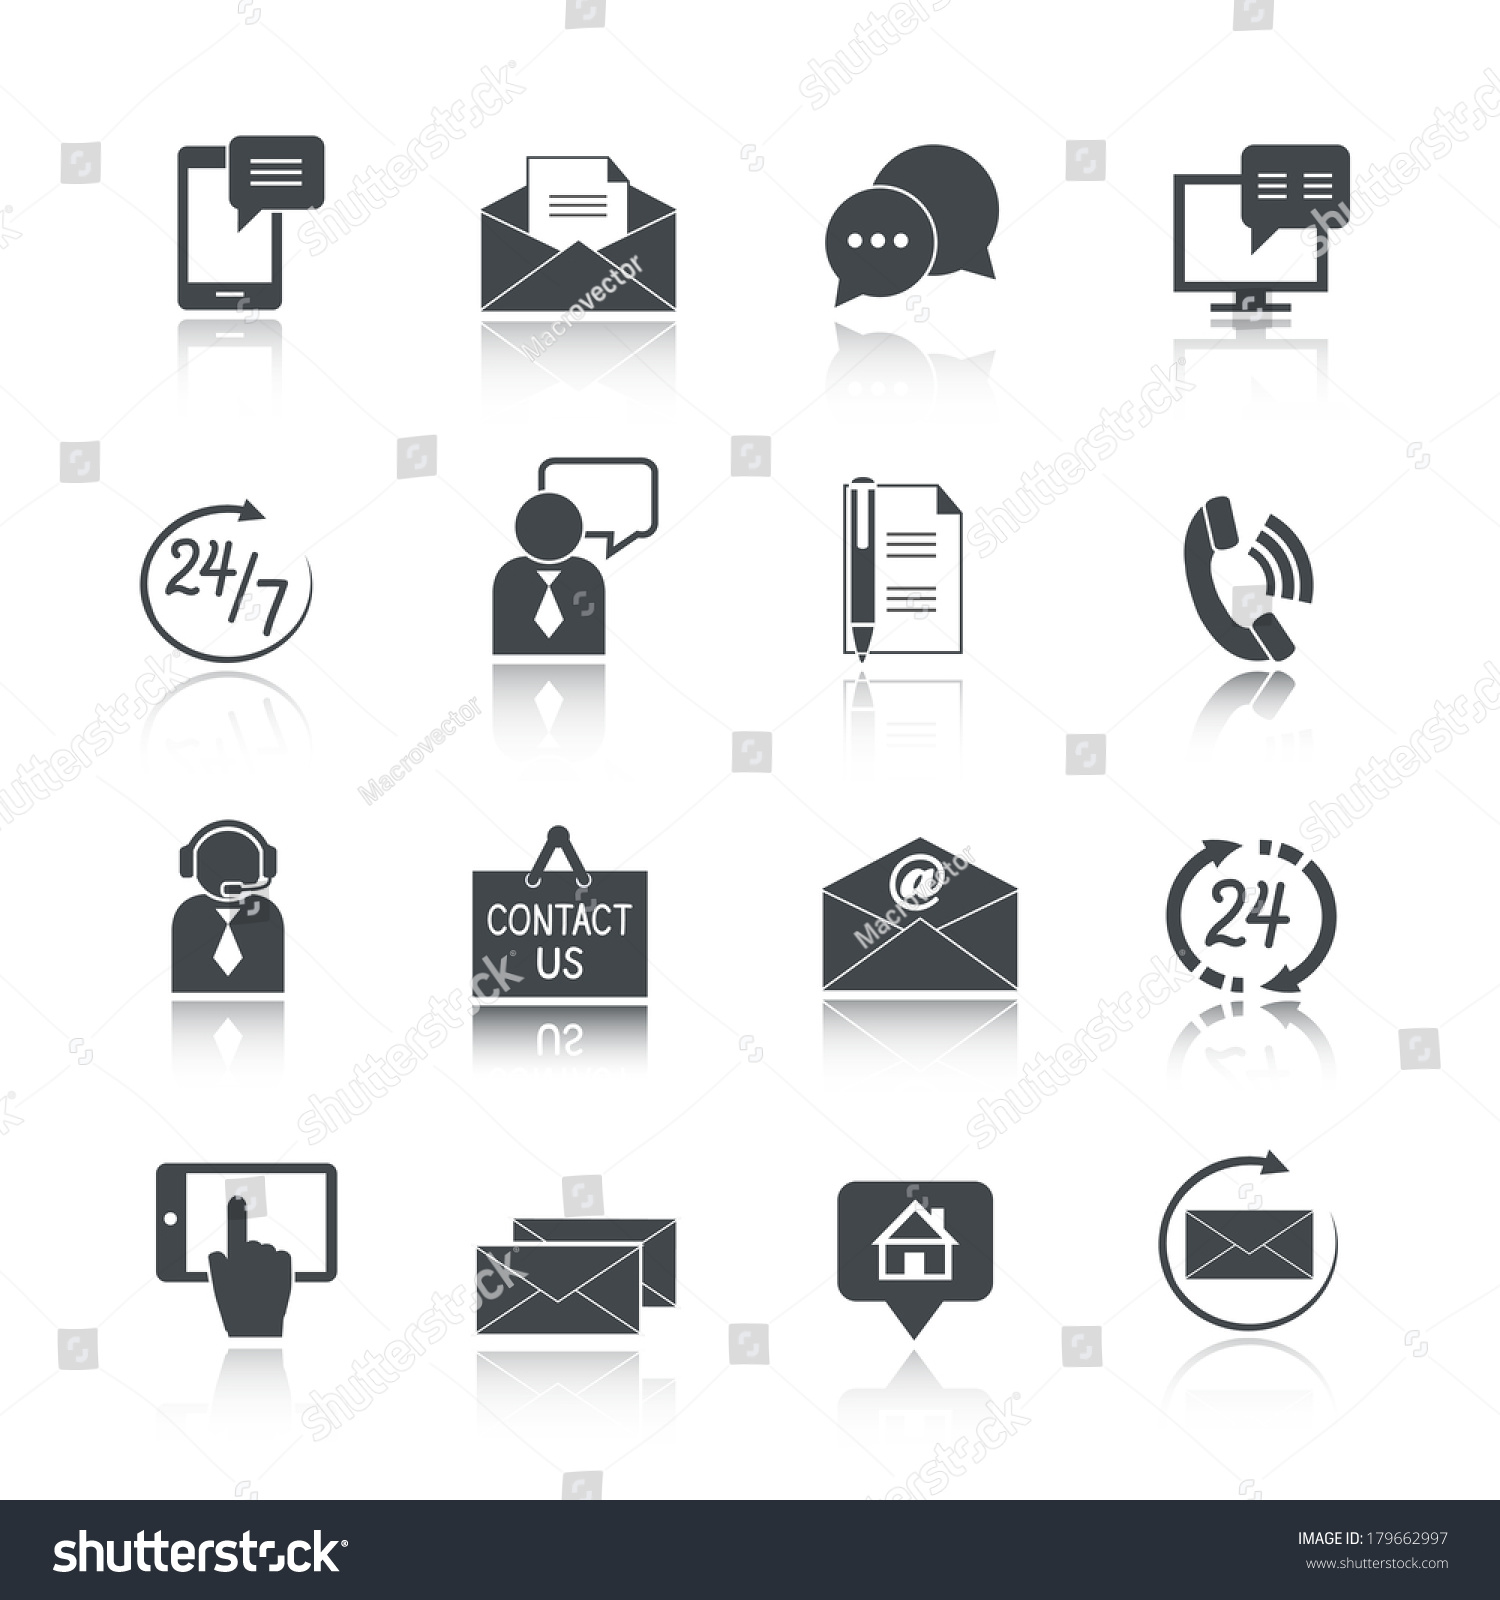 Contact Us Service Icons Set Email Stock Vector 179662997 ...